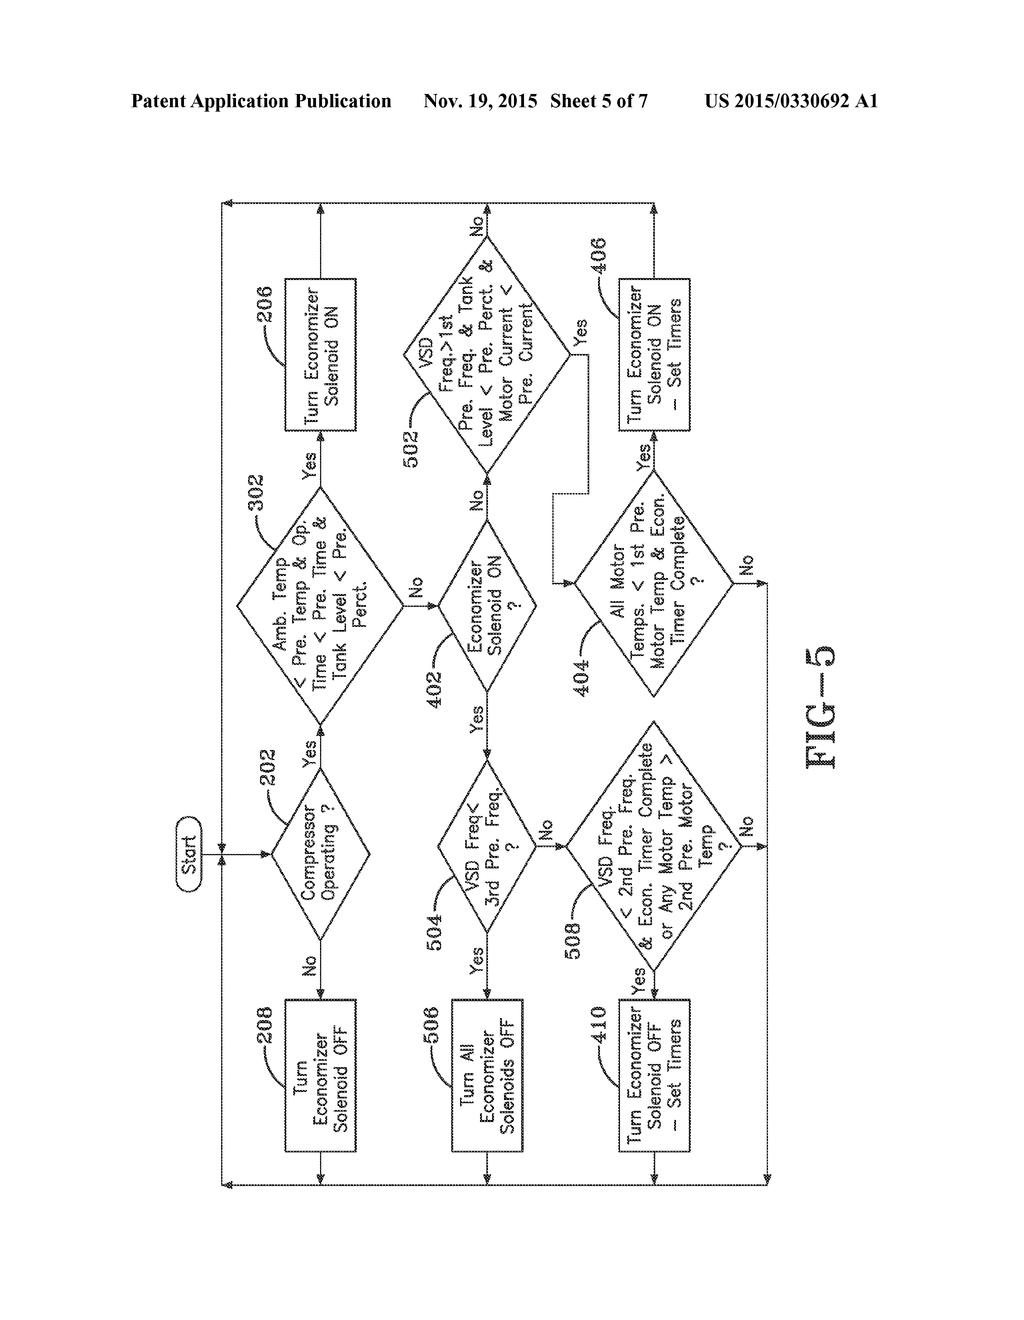 method for controlling an economizer circuit diagram schematic Charging Circuit Diagram method for controlling an economizer circuit diagram schematic and image 06